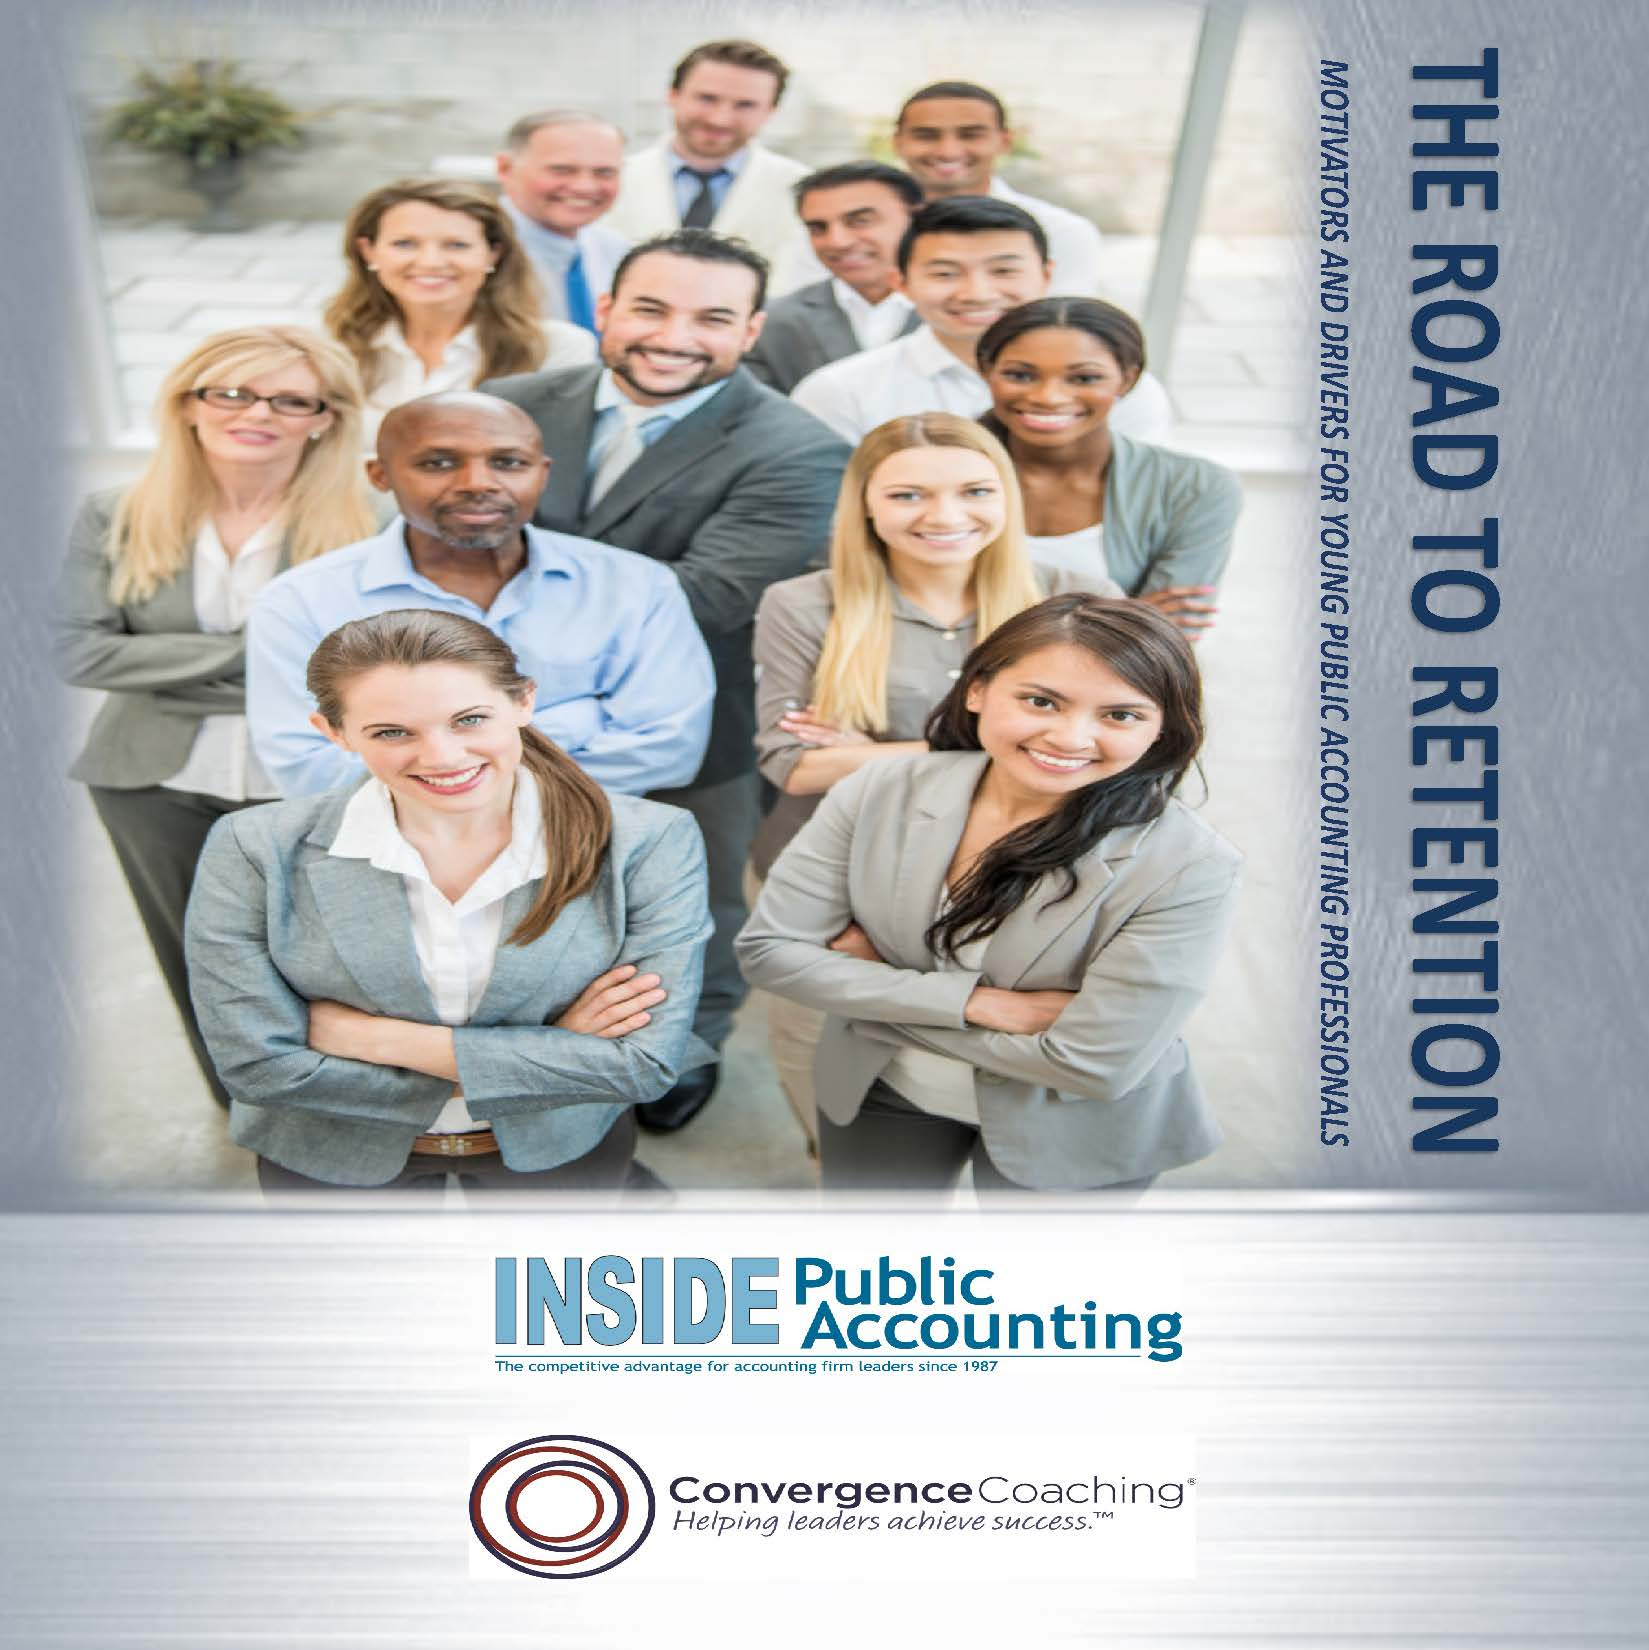 INSIDE Public Accounting and ConvergenceCoaching  Study Young Public Accounting Professionals; Release The Road to Retention